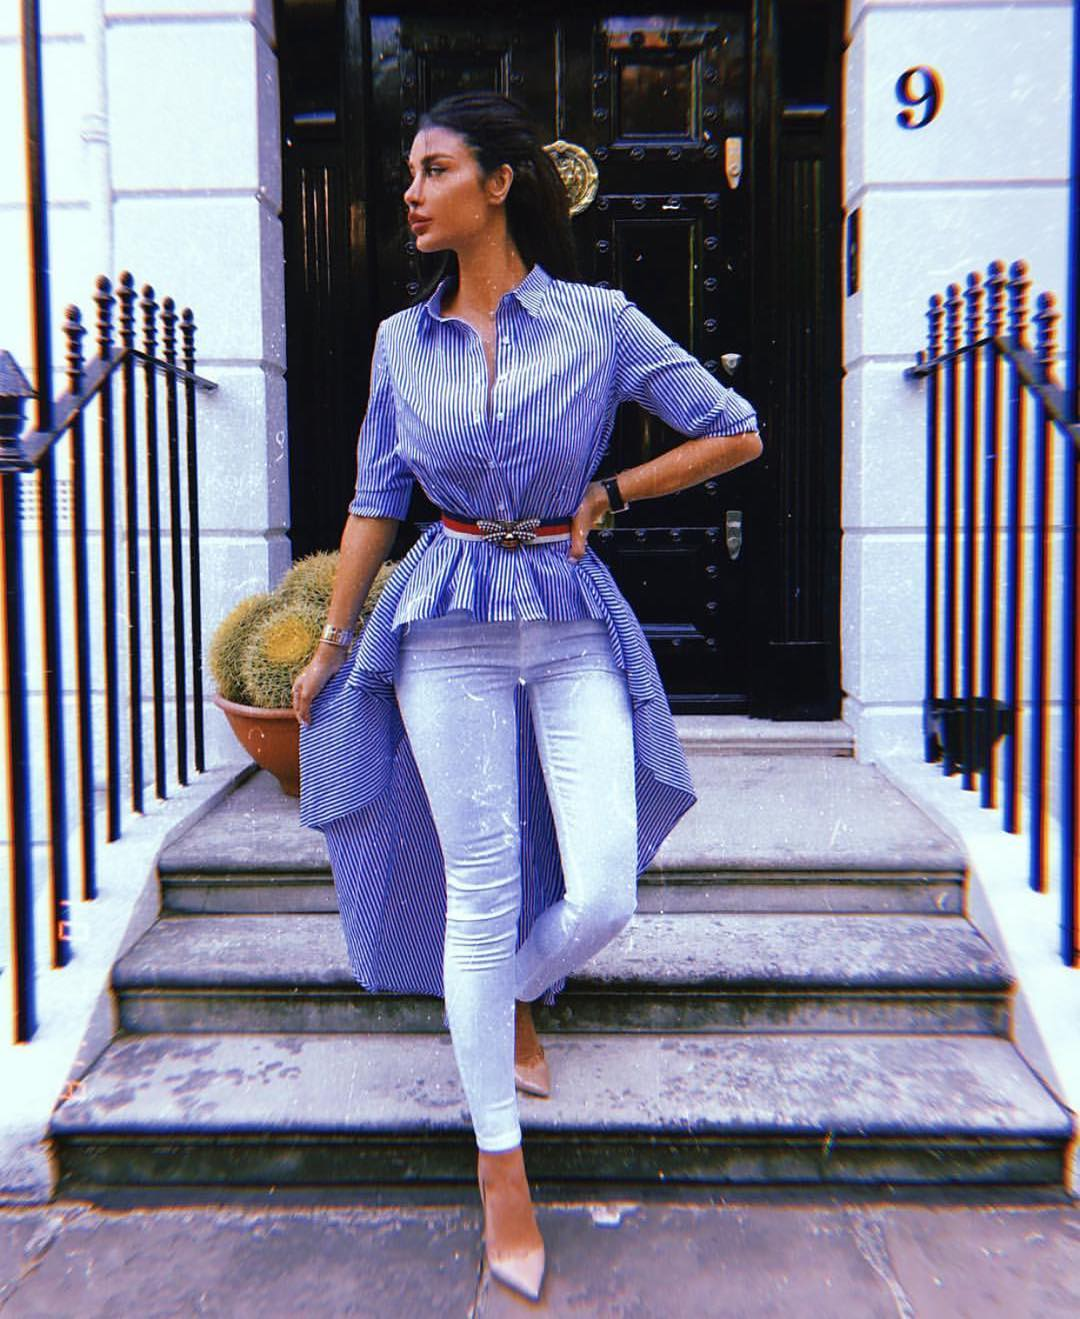 Pinstripe High Down Tunic Top With A Belt And White Skinny Jeans For Summer 2019